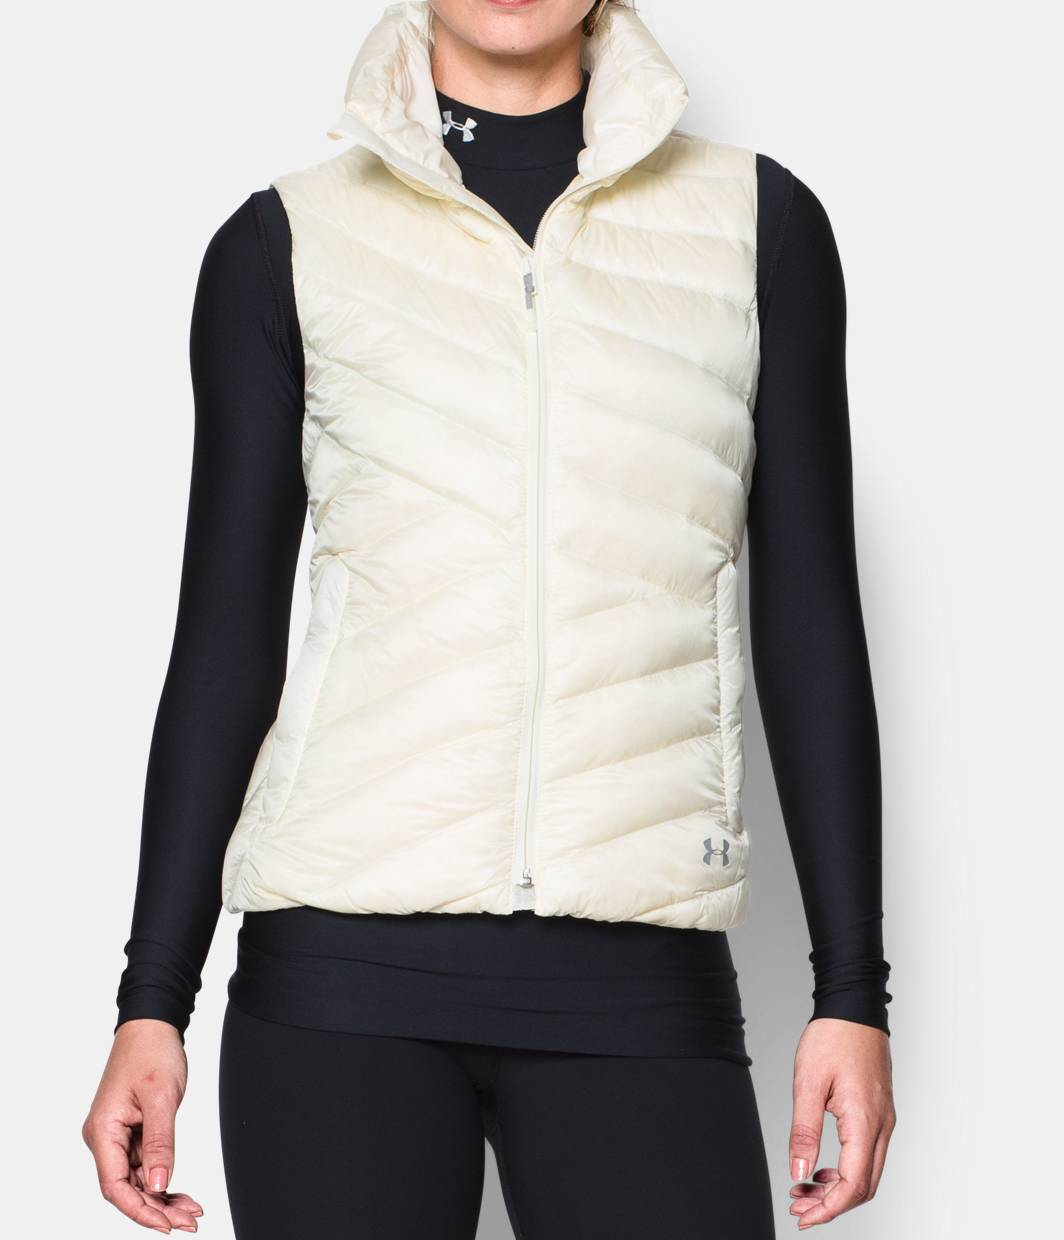 New Womens Under Armour Vest L White Down Warm Puff Infrared Storm NWT Water Res image 5